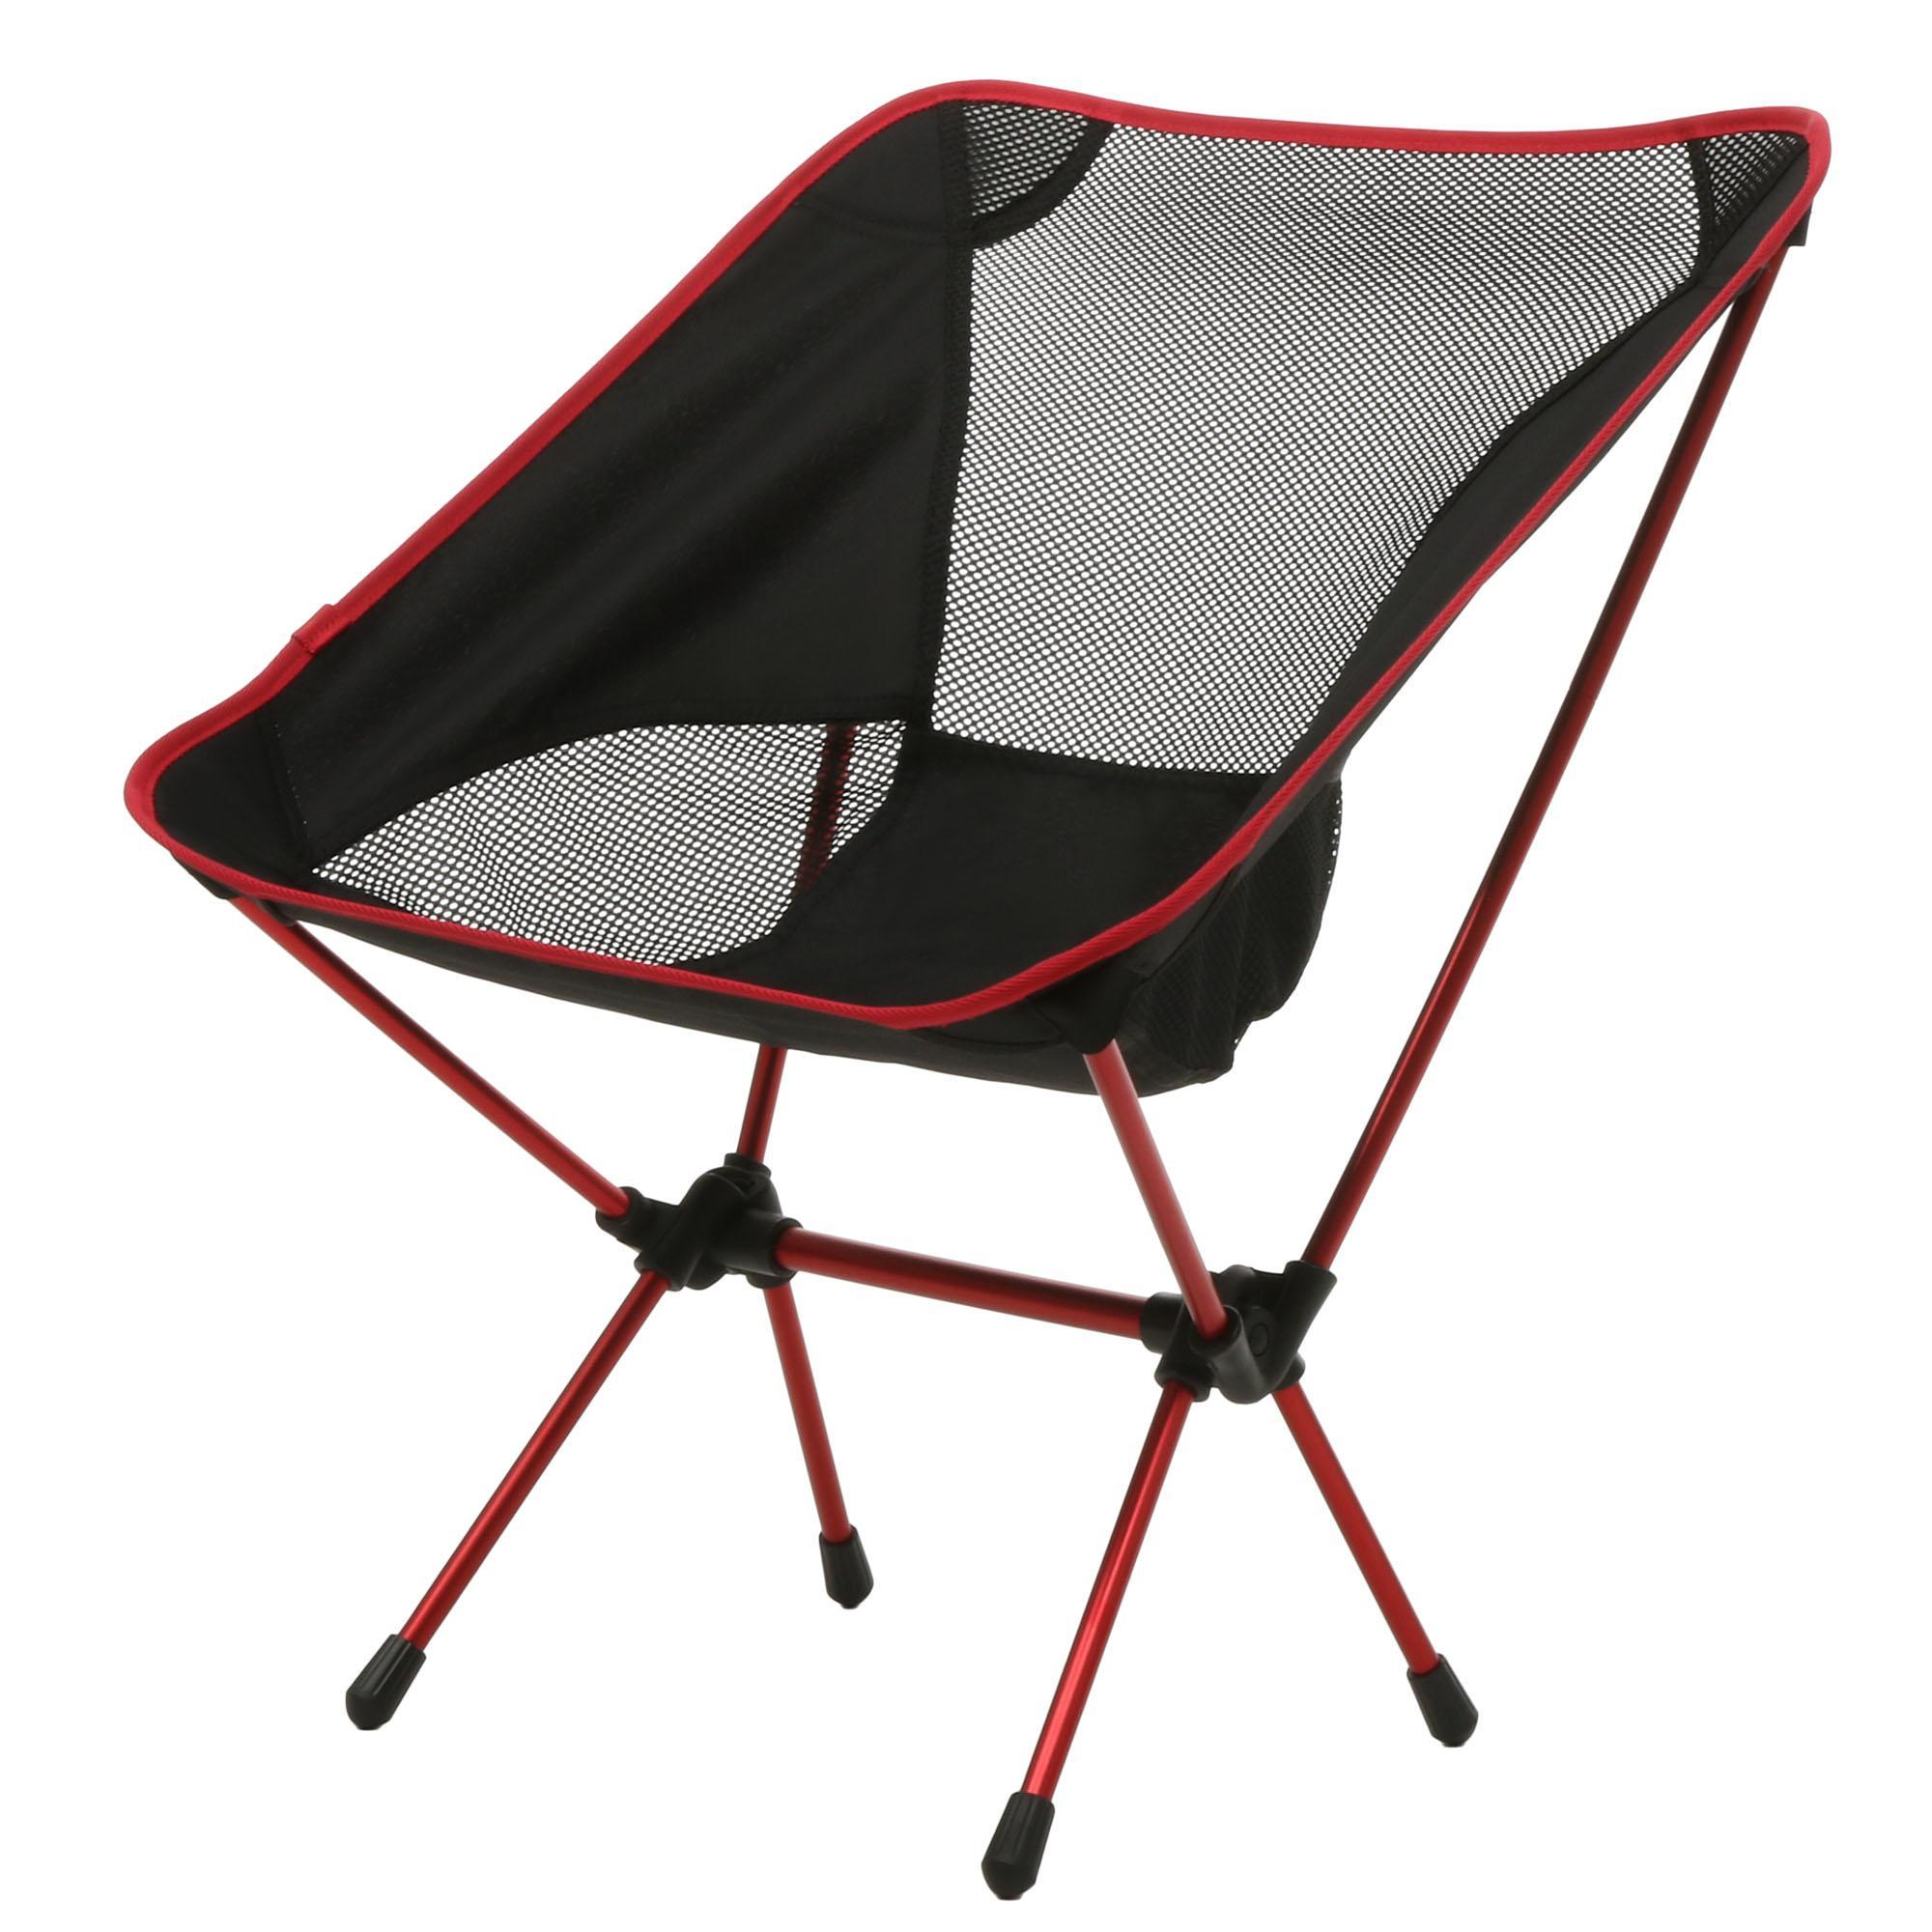 Big Saving for Portable Folding Ultimate Camping Chair Ground Outdoors Lightweight and Durable Margot by